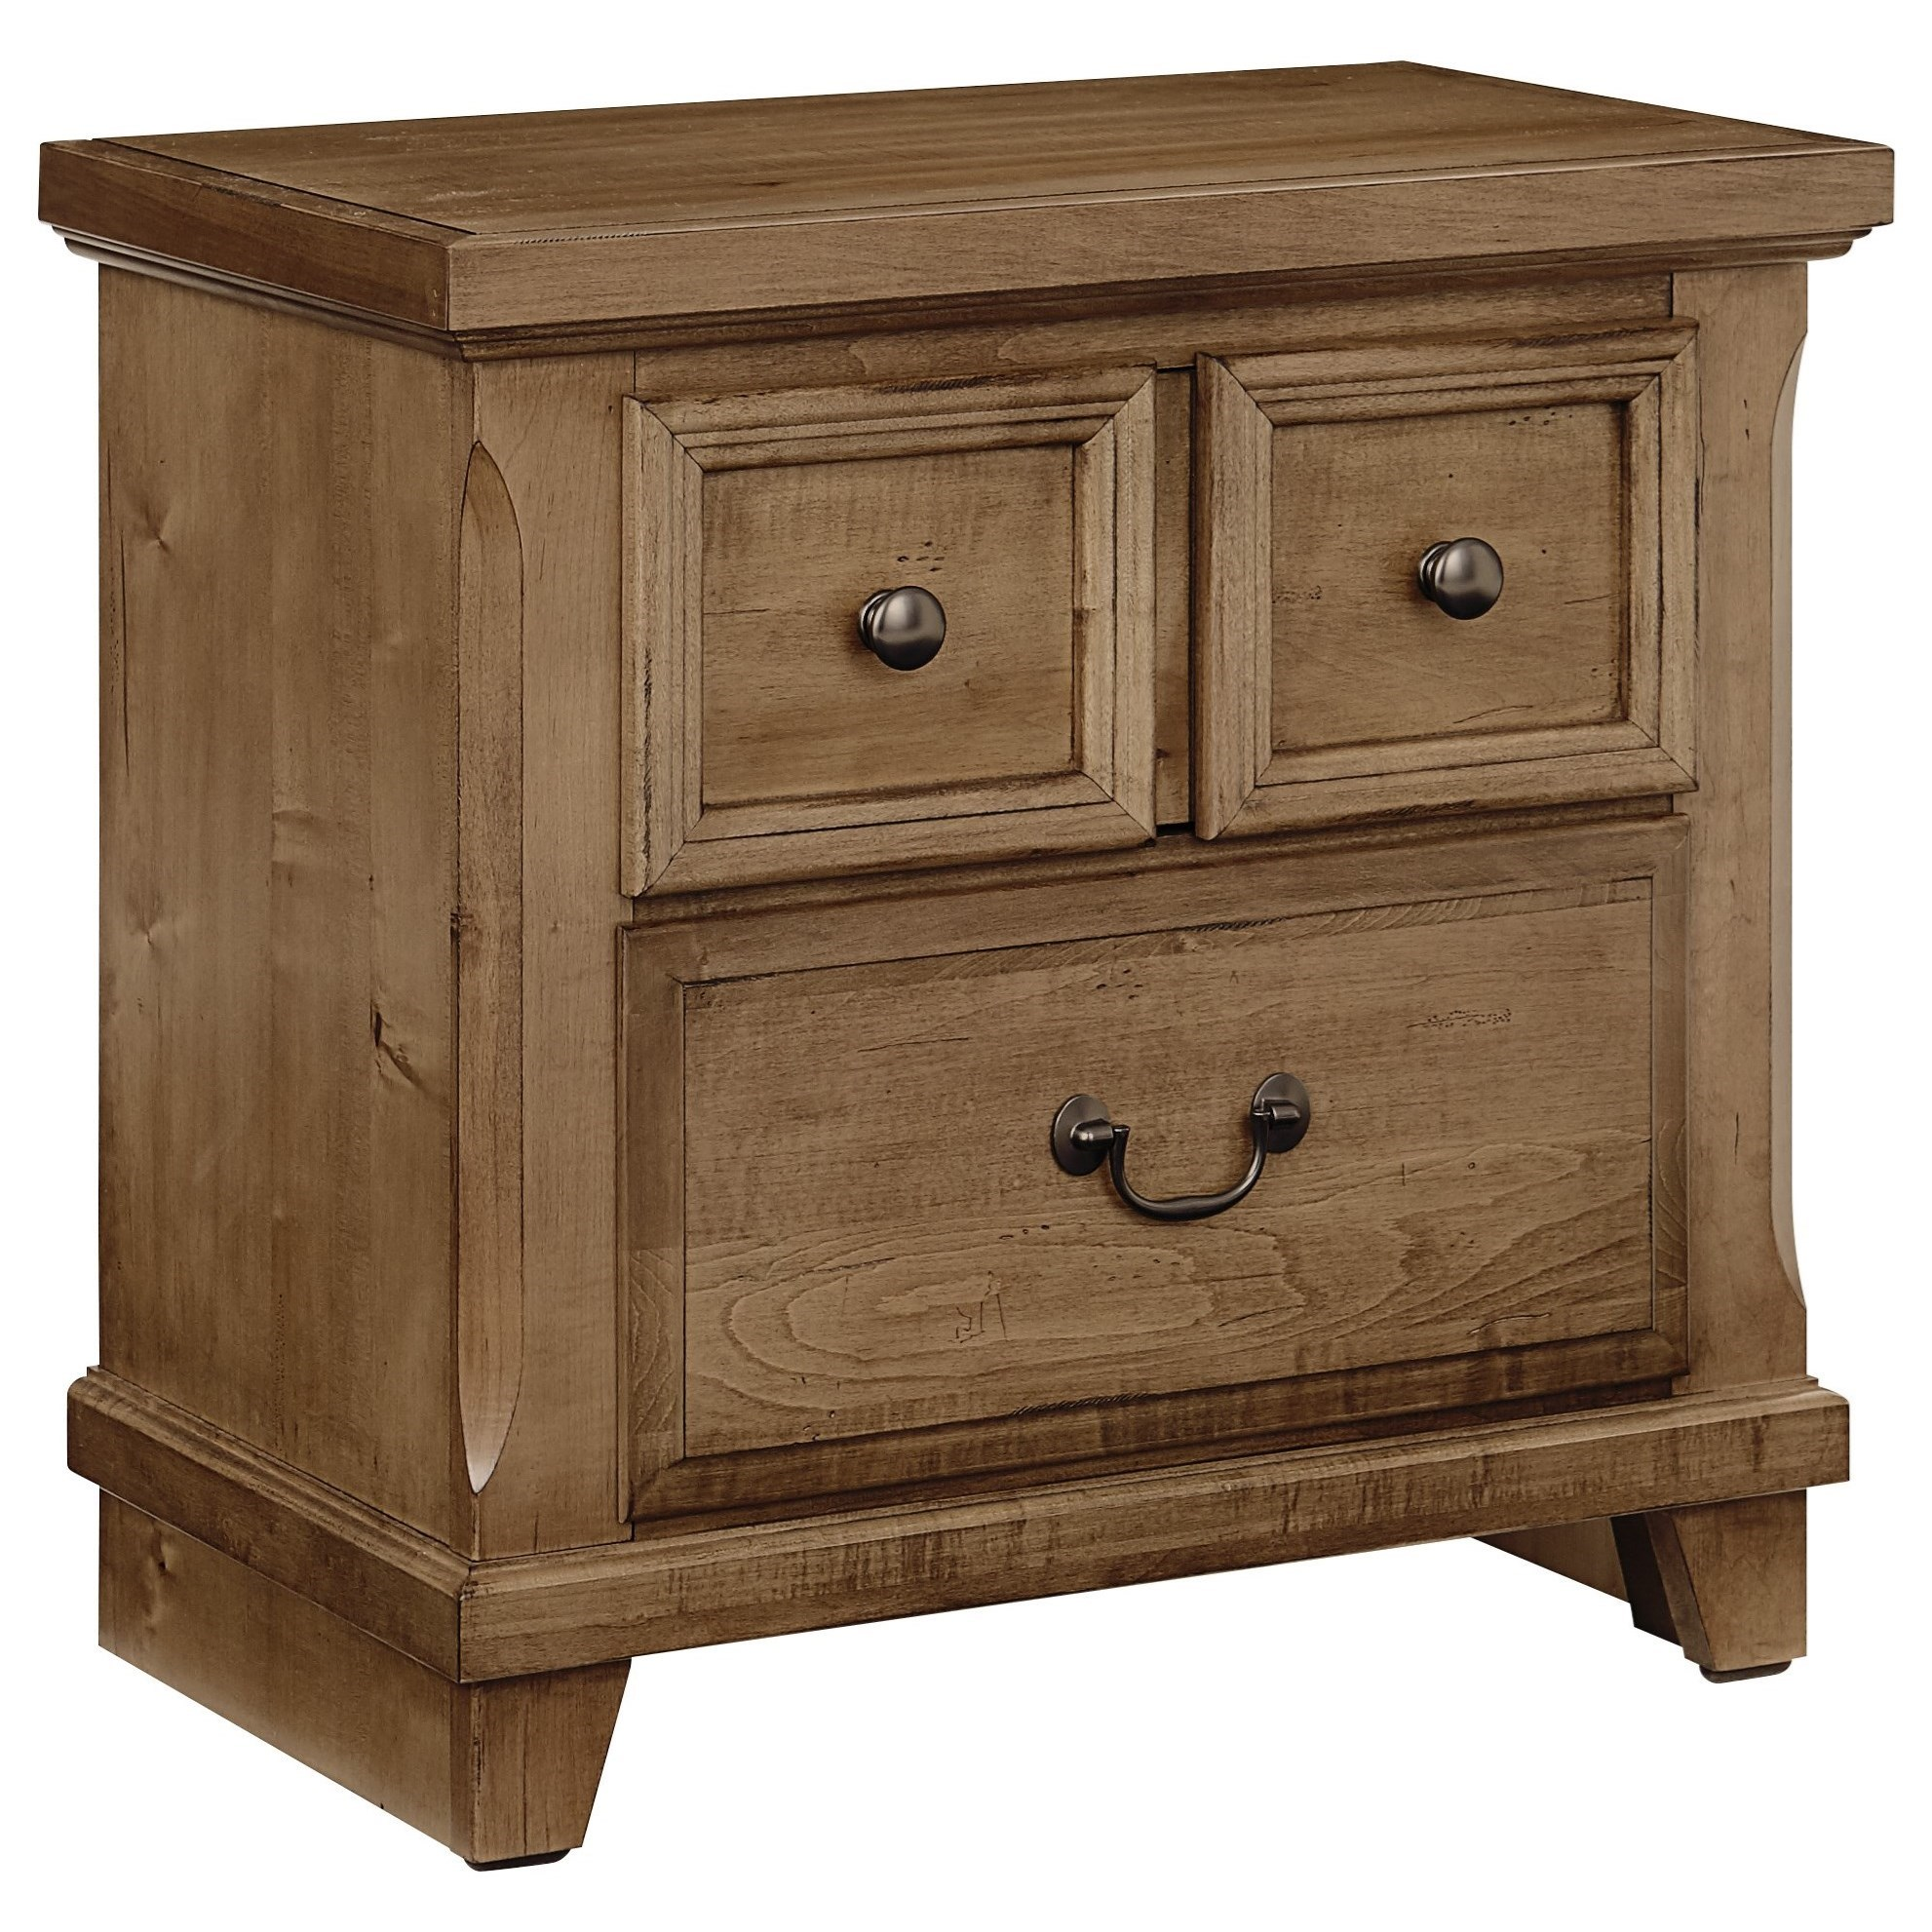 Vaughan Bassett Timber Creek Nightstand 2 Drawers